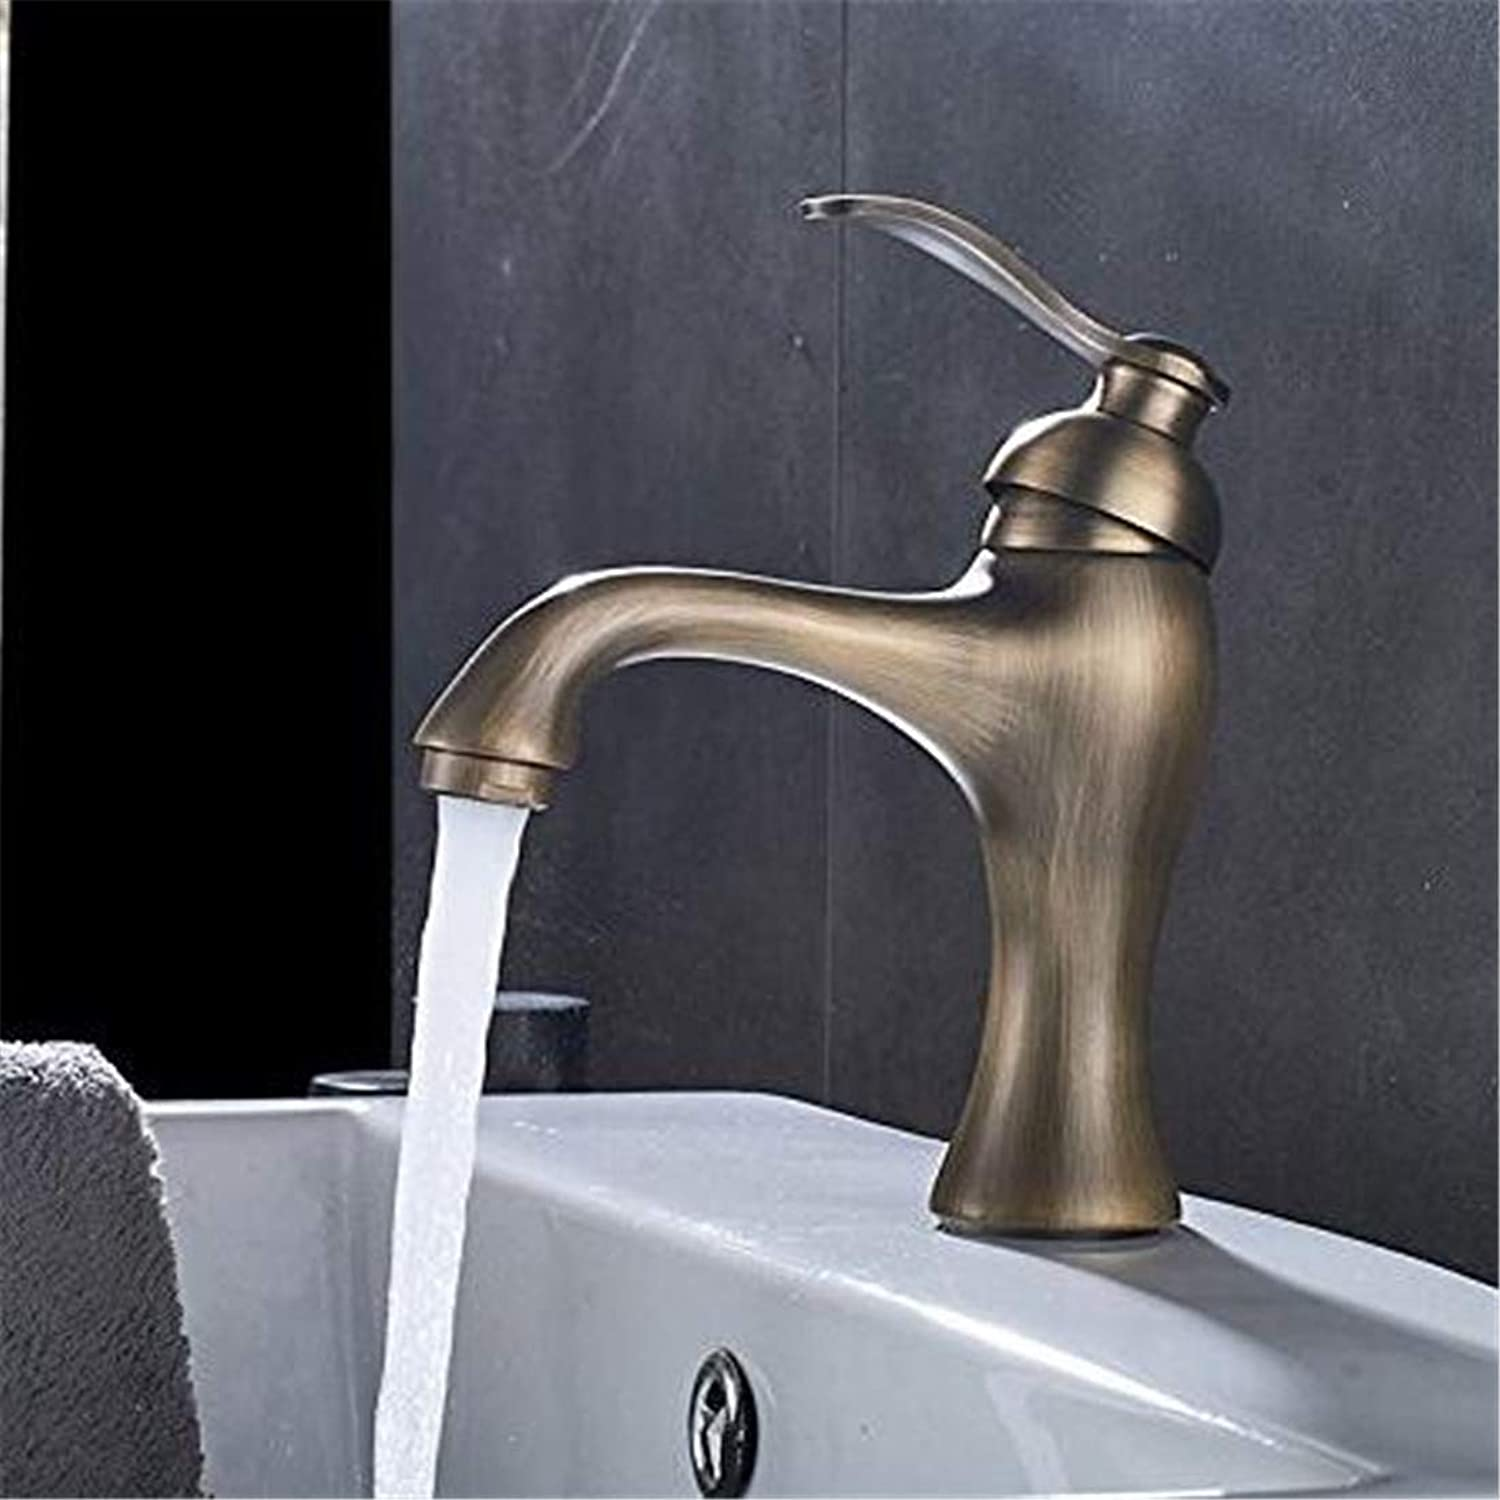 Chrome Kitchen Sink Tapantique Faucet Basin Sink Faucets Hot and Cold Water Mixer Valve Faucet Tap Taps with Plate Robinet Lavabo